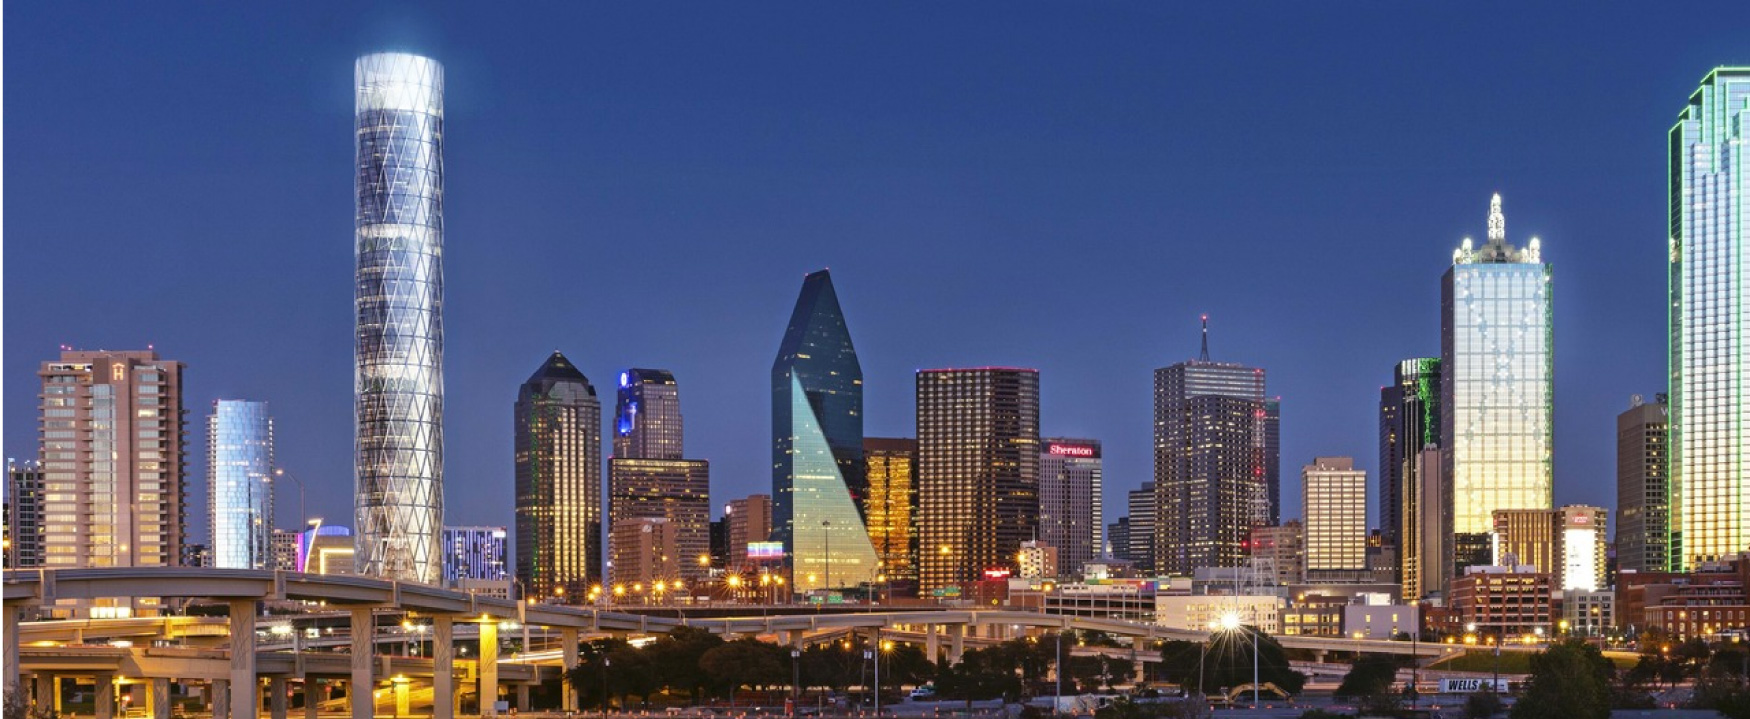 A photograph shows a brightly lit city skyline. Many of the buildings appear to be newly constructed and made entirely of glass.